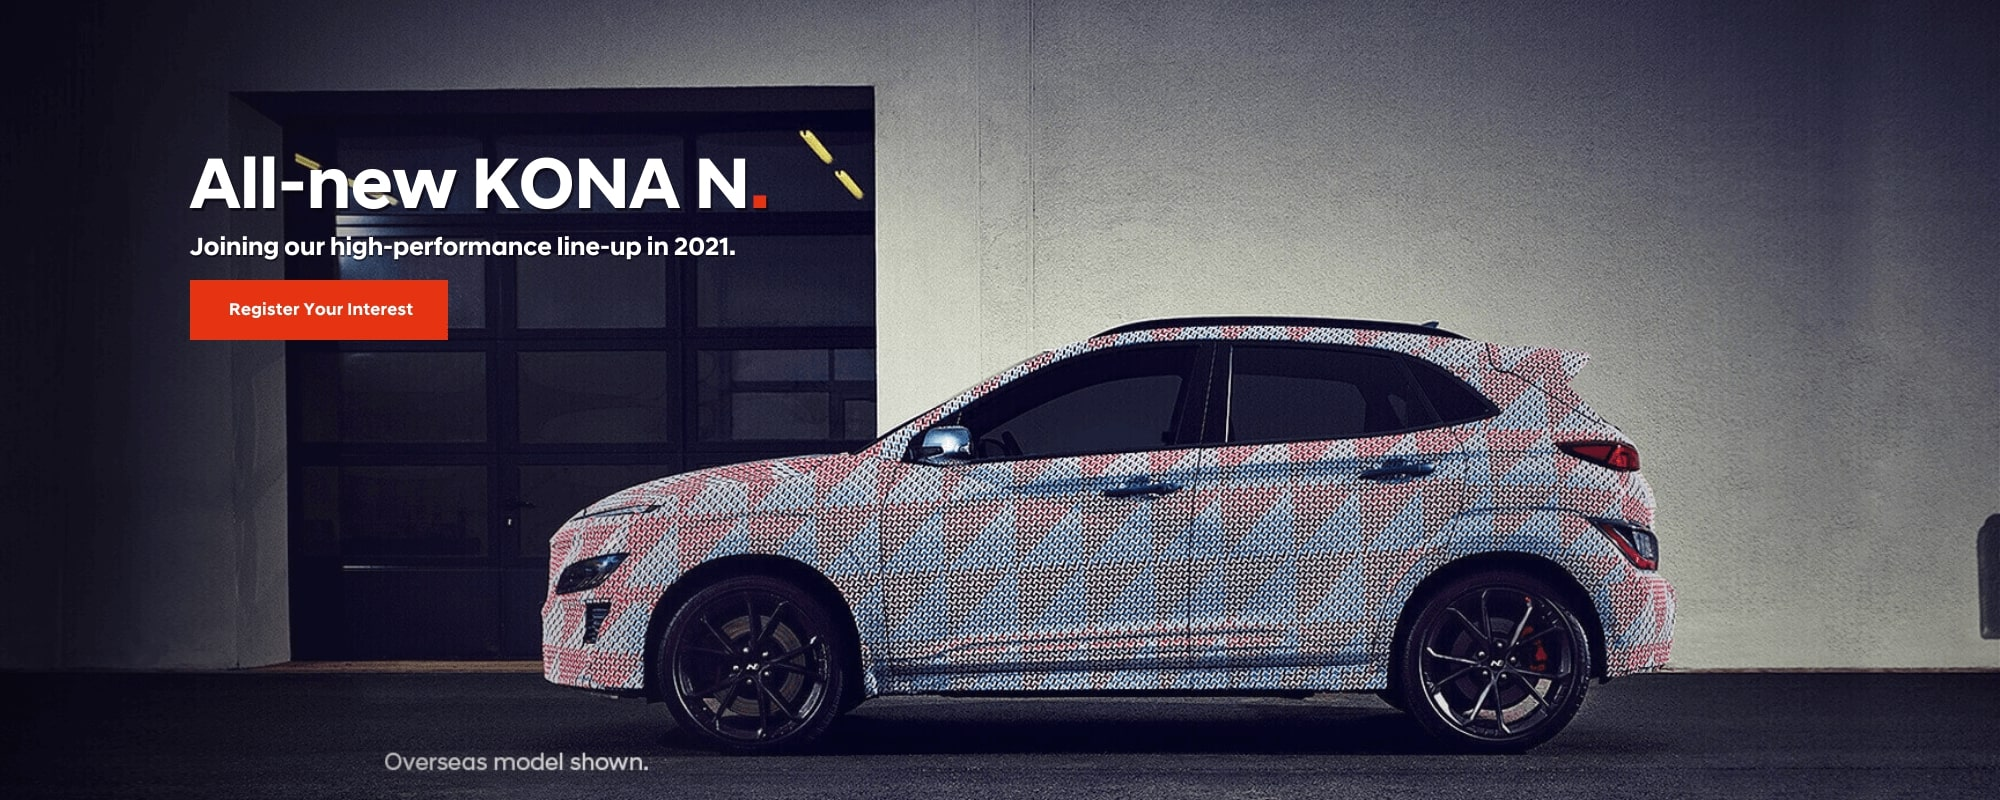 Coming Soon: Hyundai KONA N. Joining our high-performance line-up in 2021.